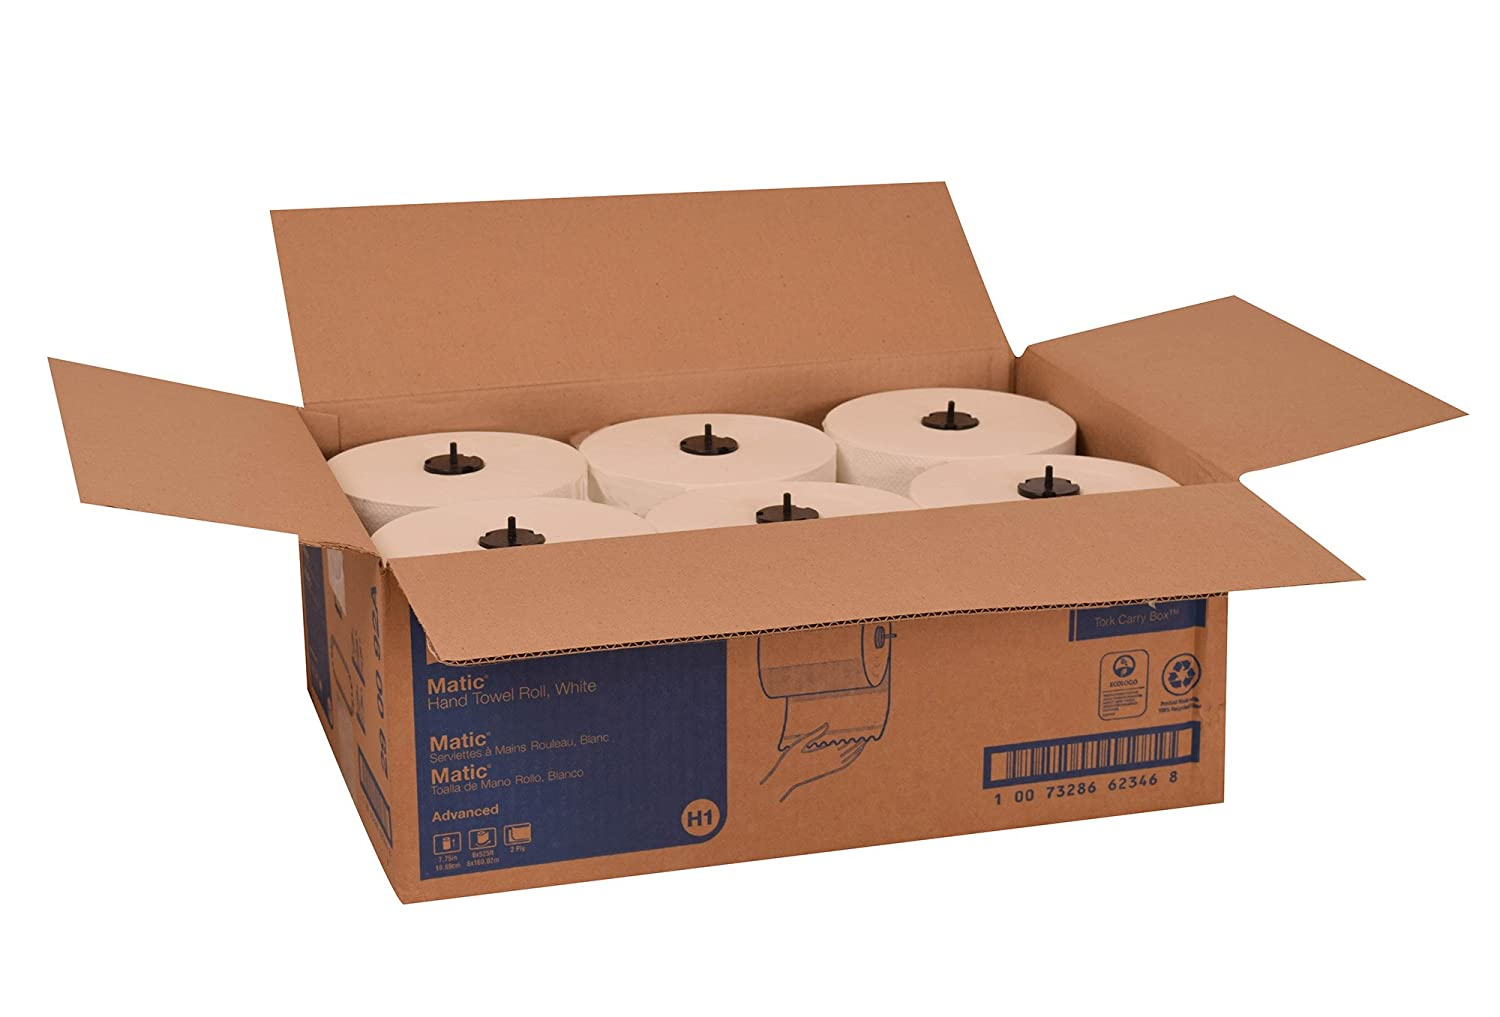 Hard-to-Find Fastener 014973525316 525316 Concrete-Screws-and-Bolts 100 Piece